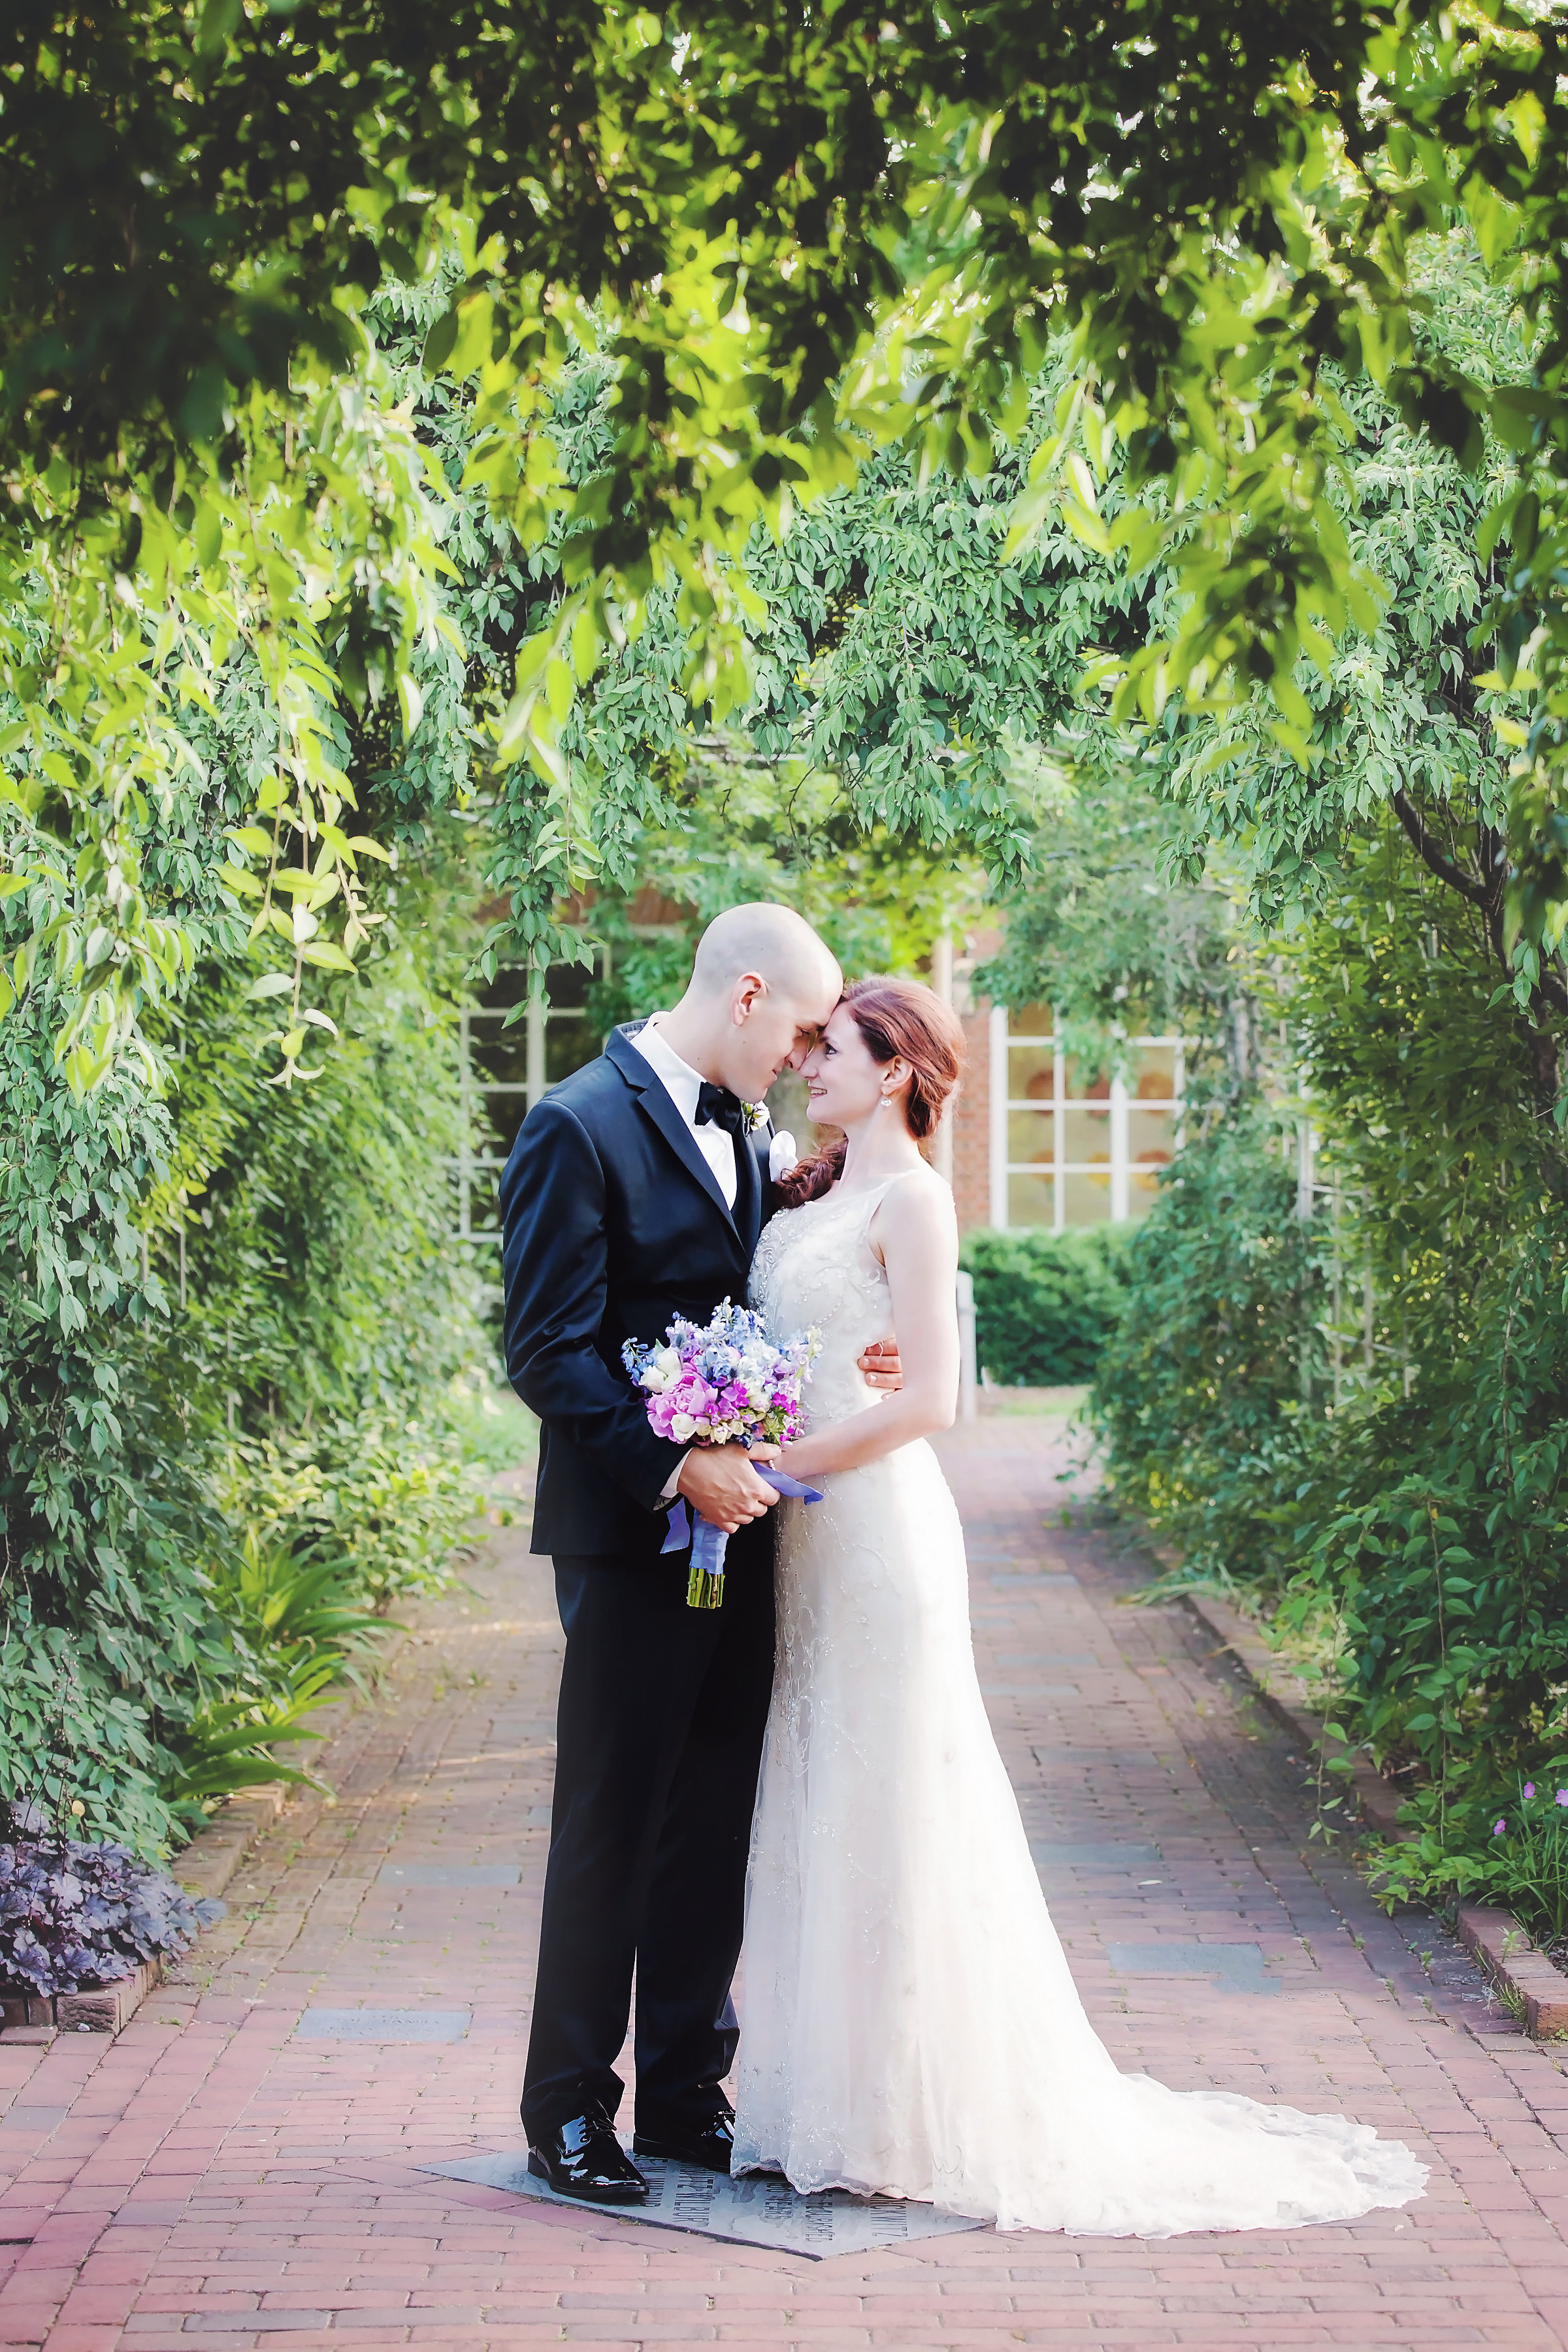 Ashley and Michael Bell's wedding was held this past Spring at Lewis Ginter Botanical Gardens. -